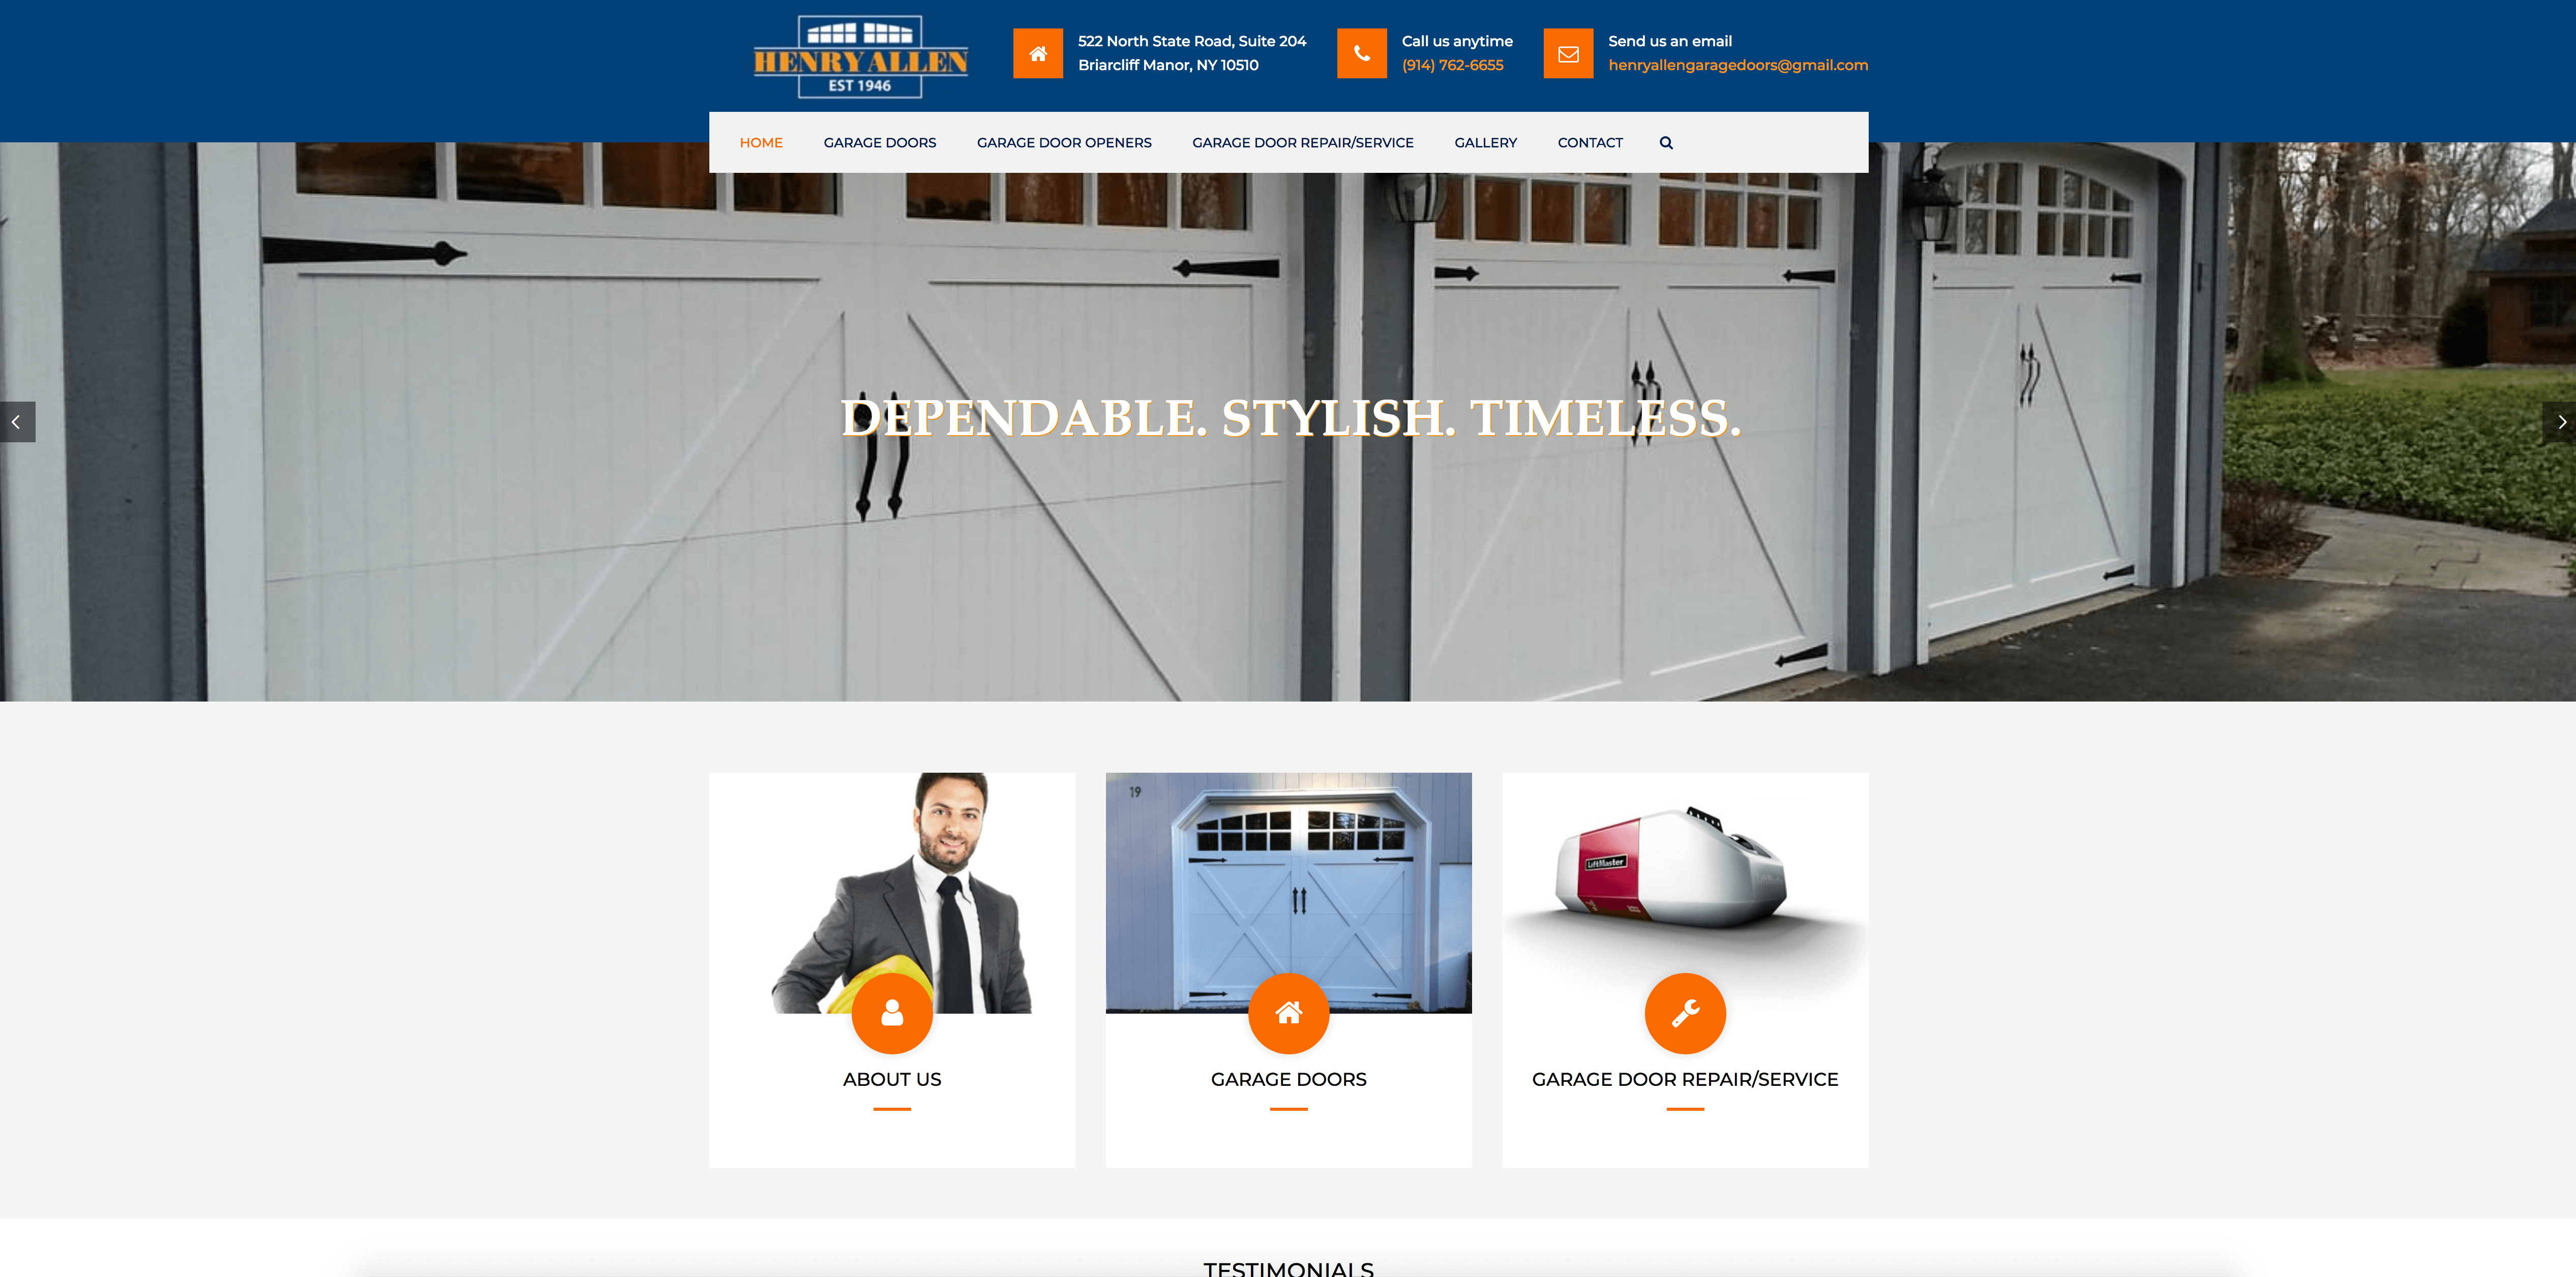 Henry Allen Garage Doors Solutions For Growth Email Marketing